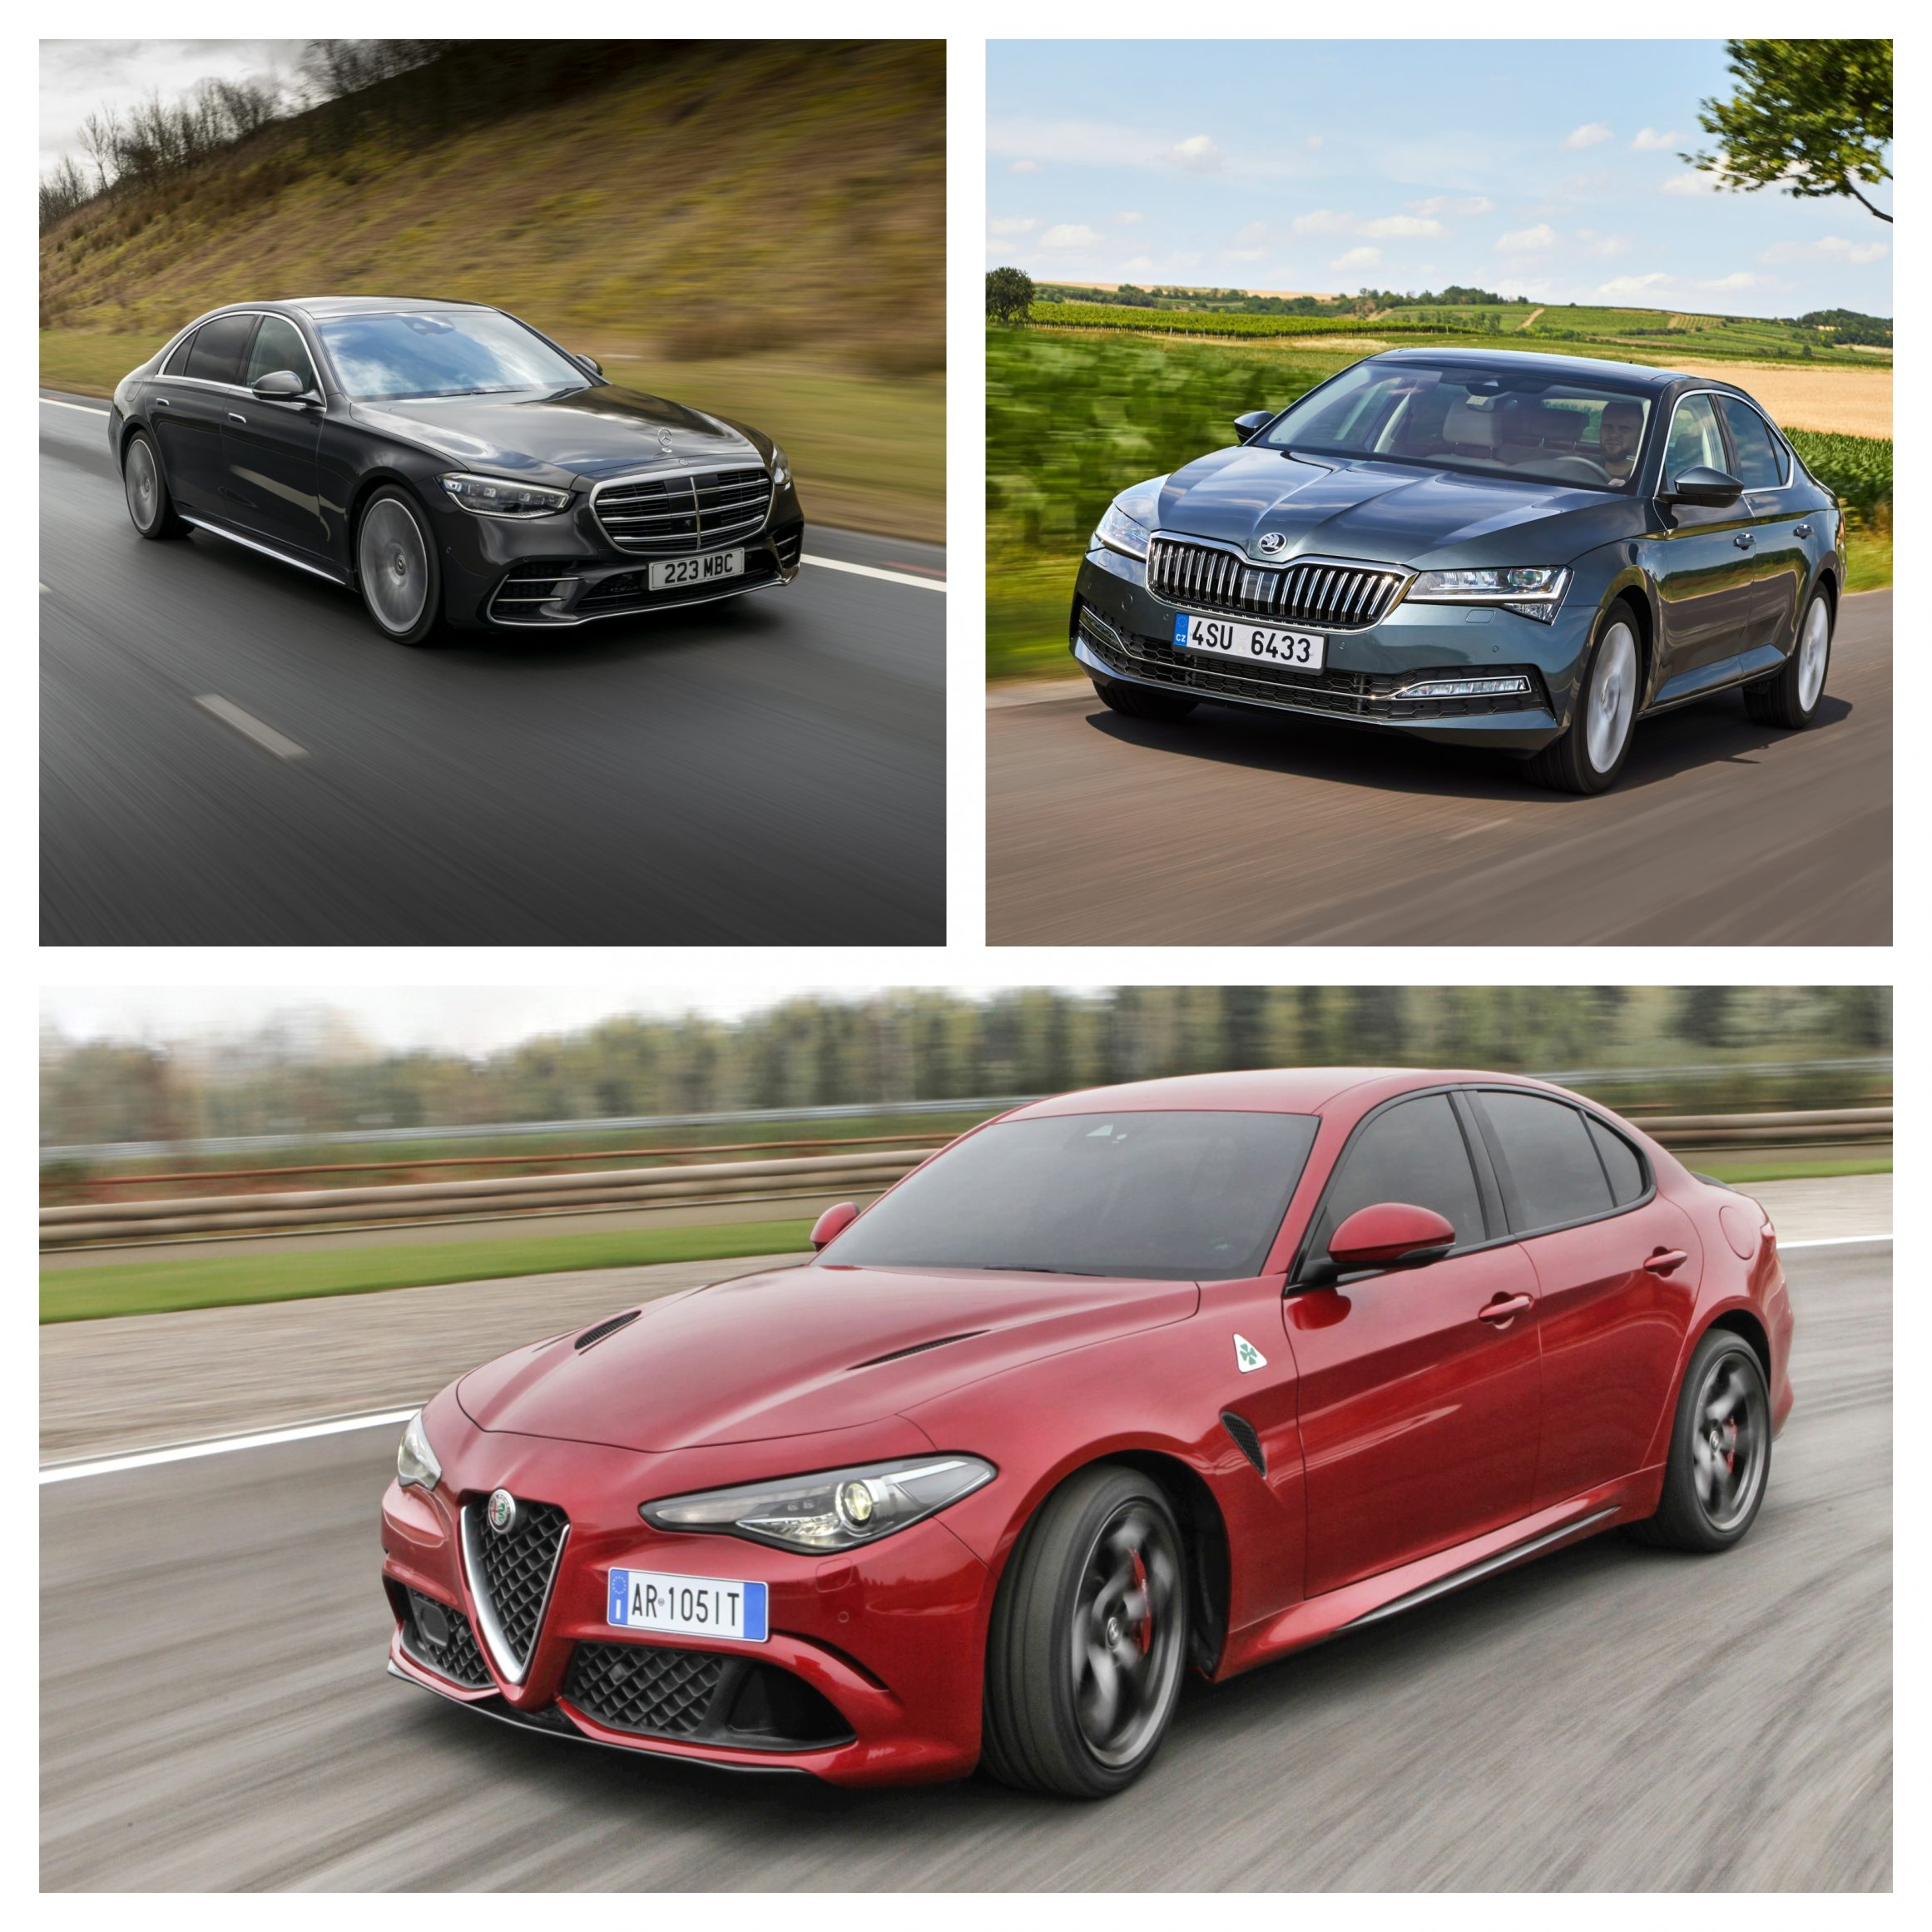 Best saloon cars - saloon car meaning